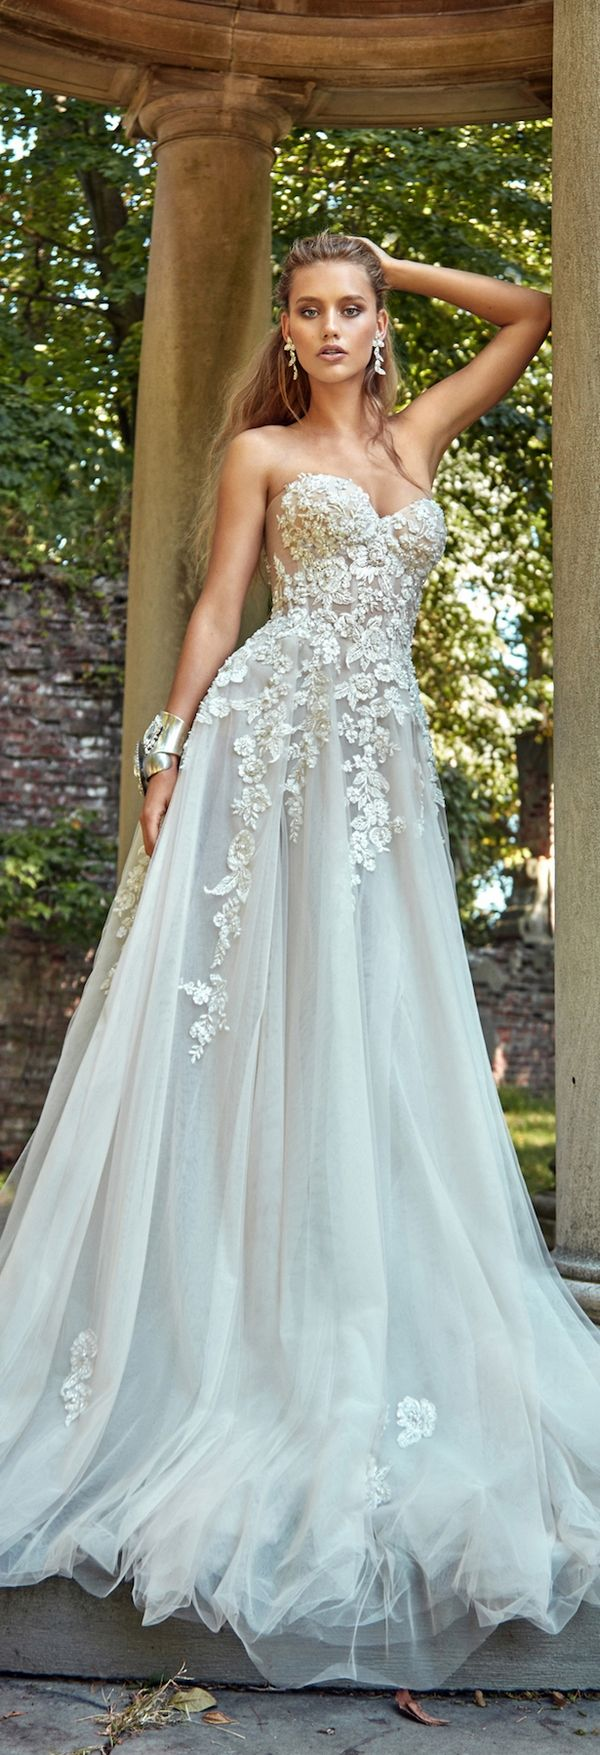 Galia Lahav 2017 Wedding Dresses / http://www.himisspuff.com/galia-lahav-fall-2017-wedding-dresses/